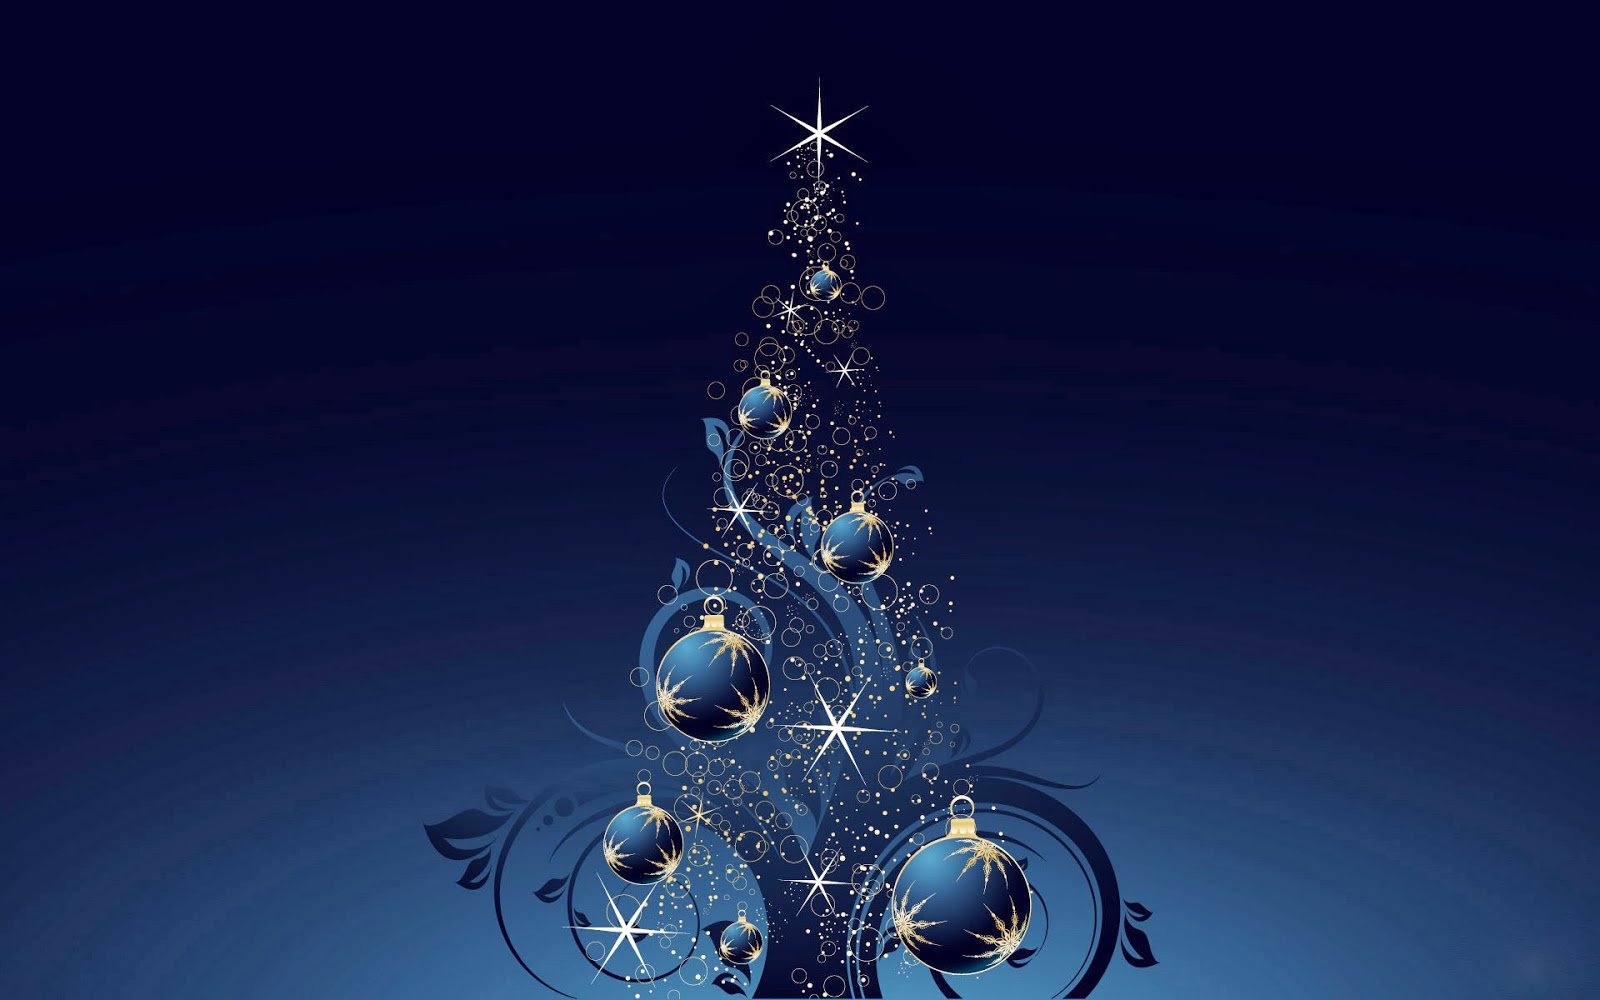 widescreen 3d christmas wallpaper - wallpapersafari